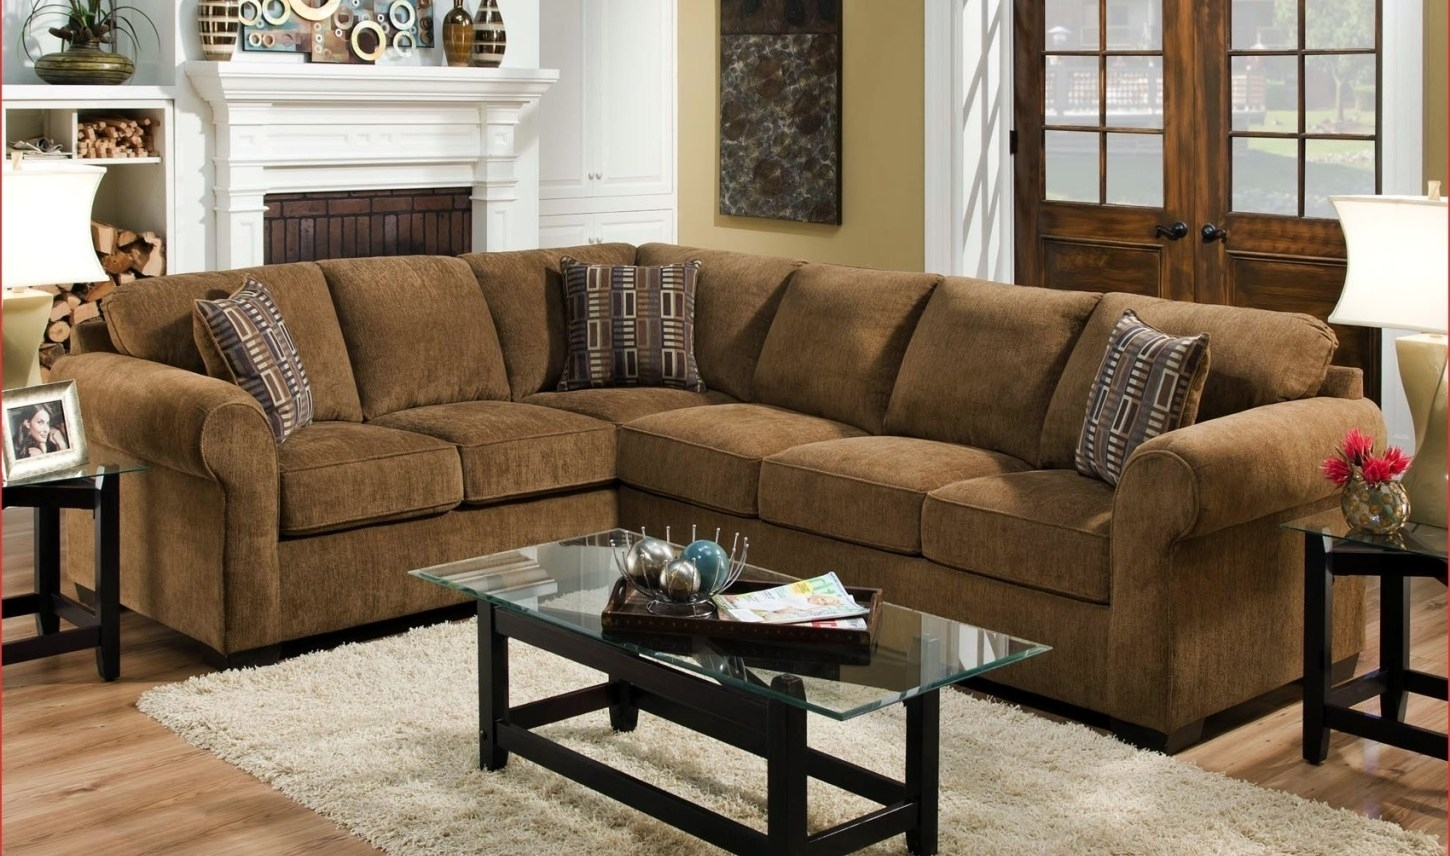 Collection Sectional Sofas Orange County Ca – Mediasupload For Orange County Ca Sectional Sofas (View 9 of 10)